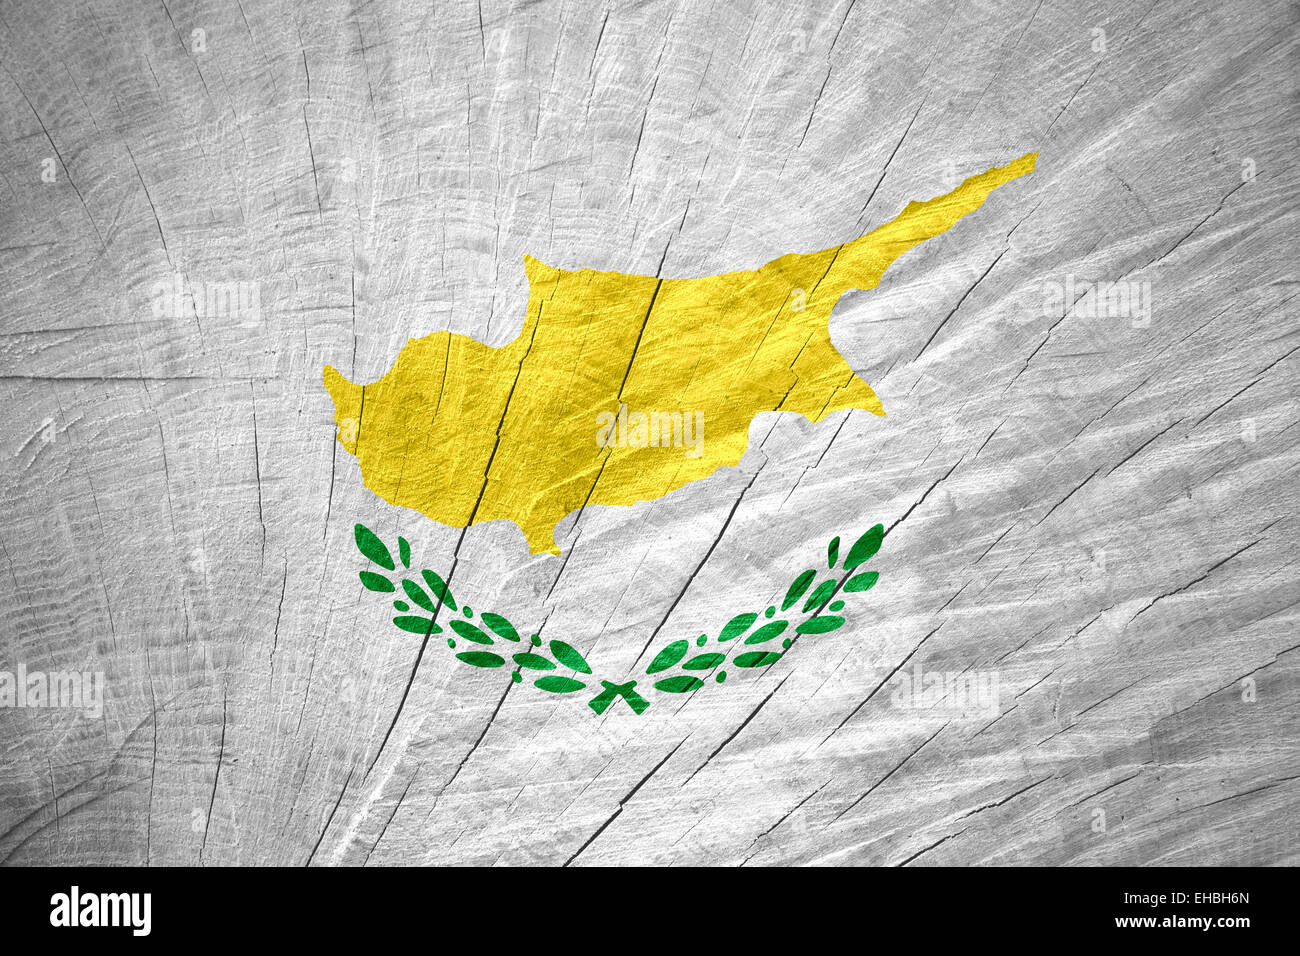 Cyprus flag or Cypriot banner on wooden texture - Stock Image